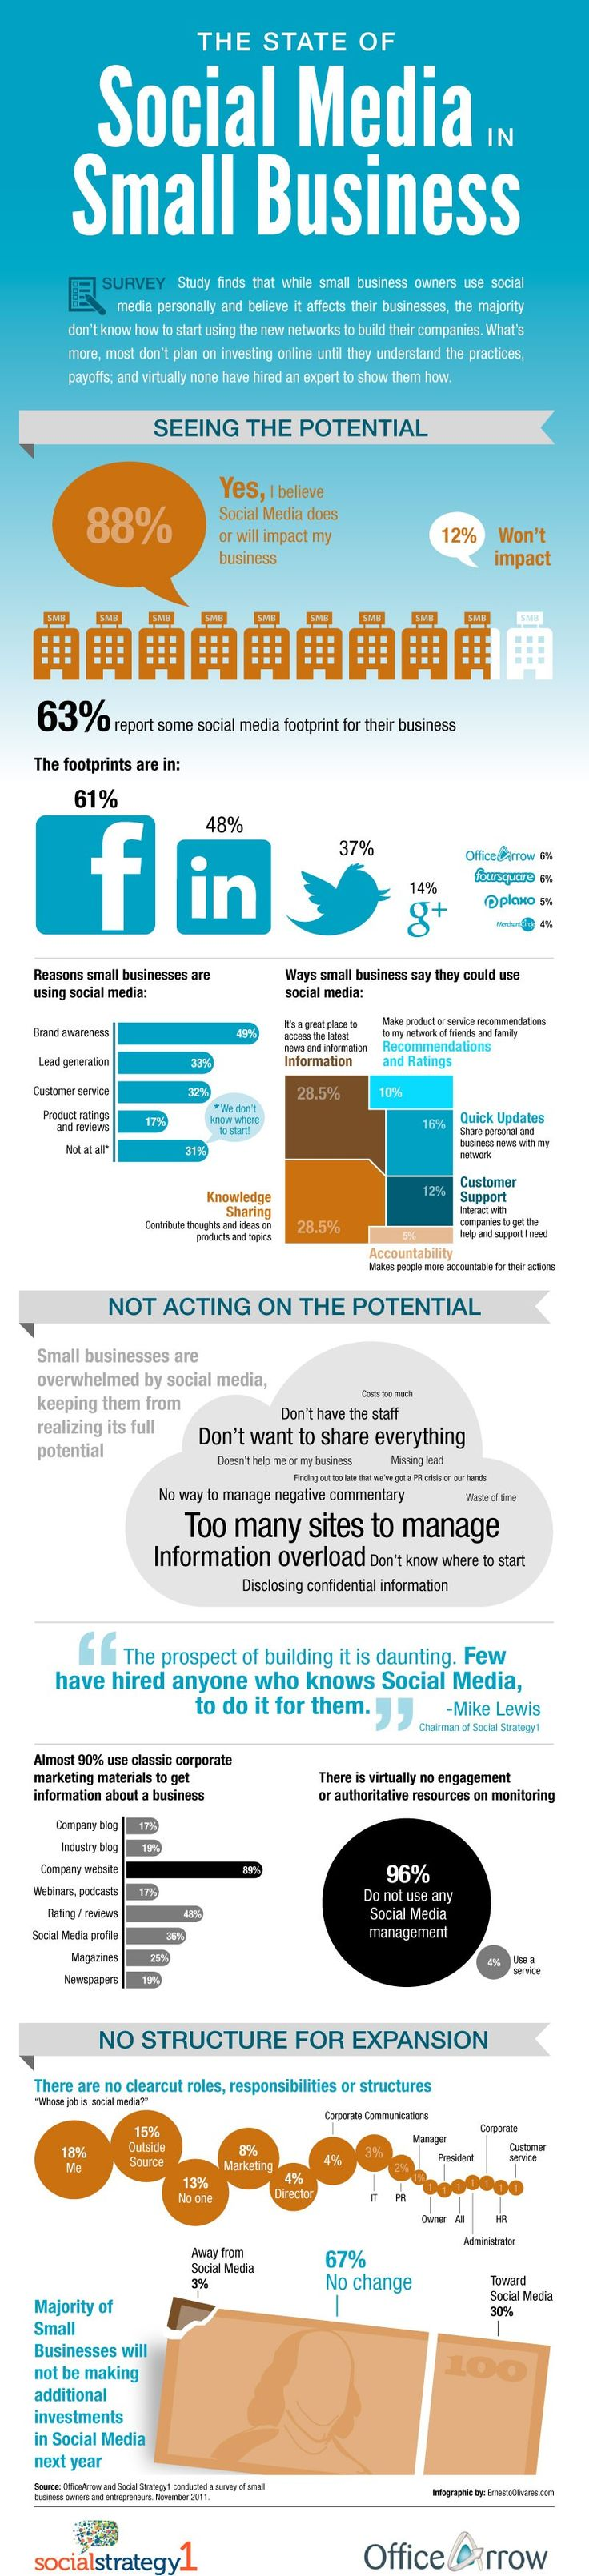 Role of Social Media in Small Business